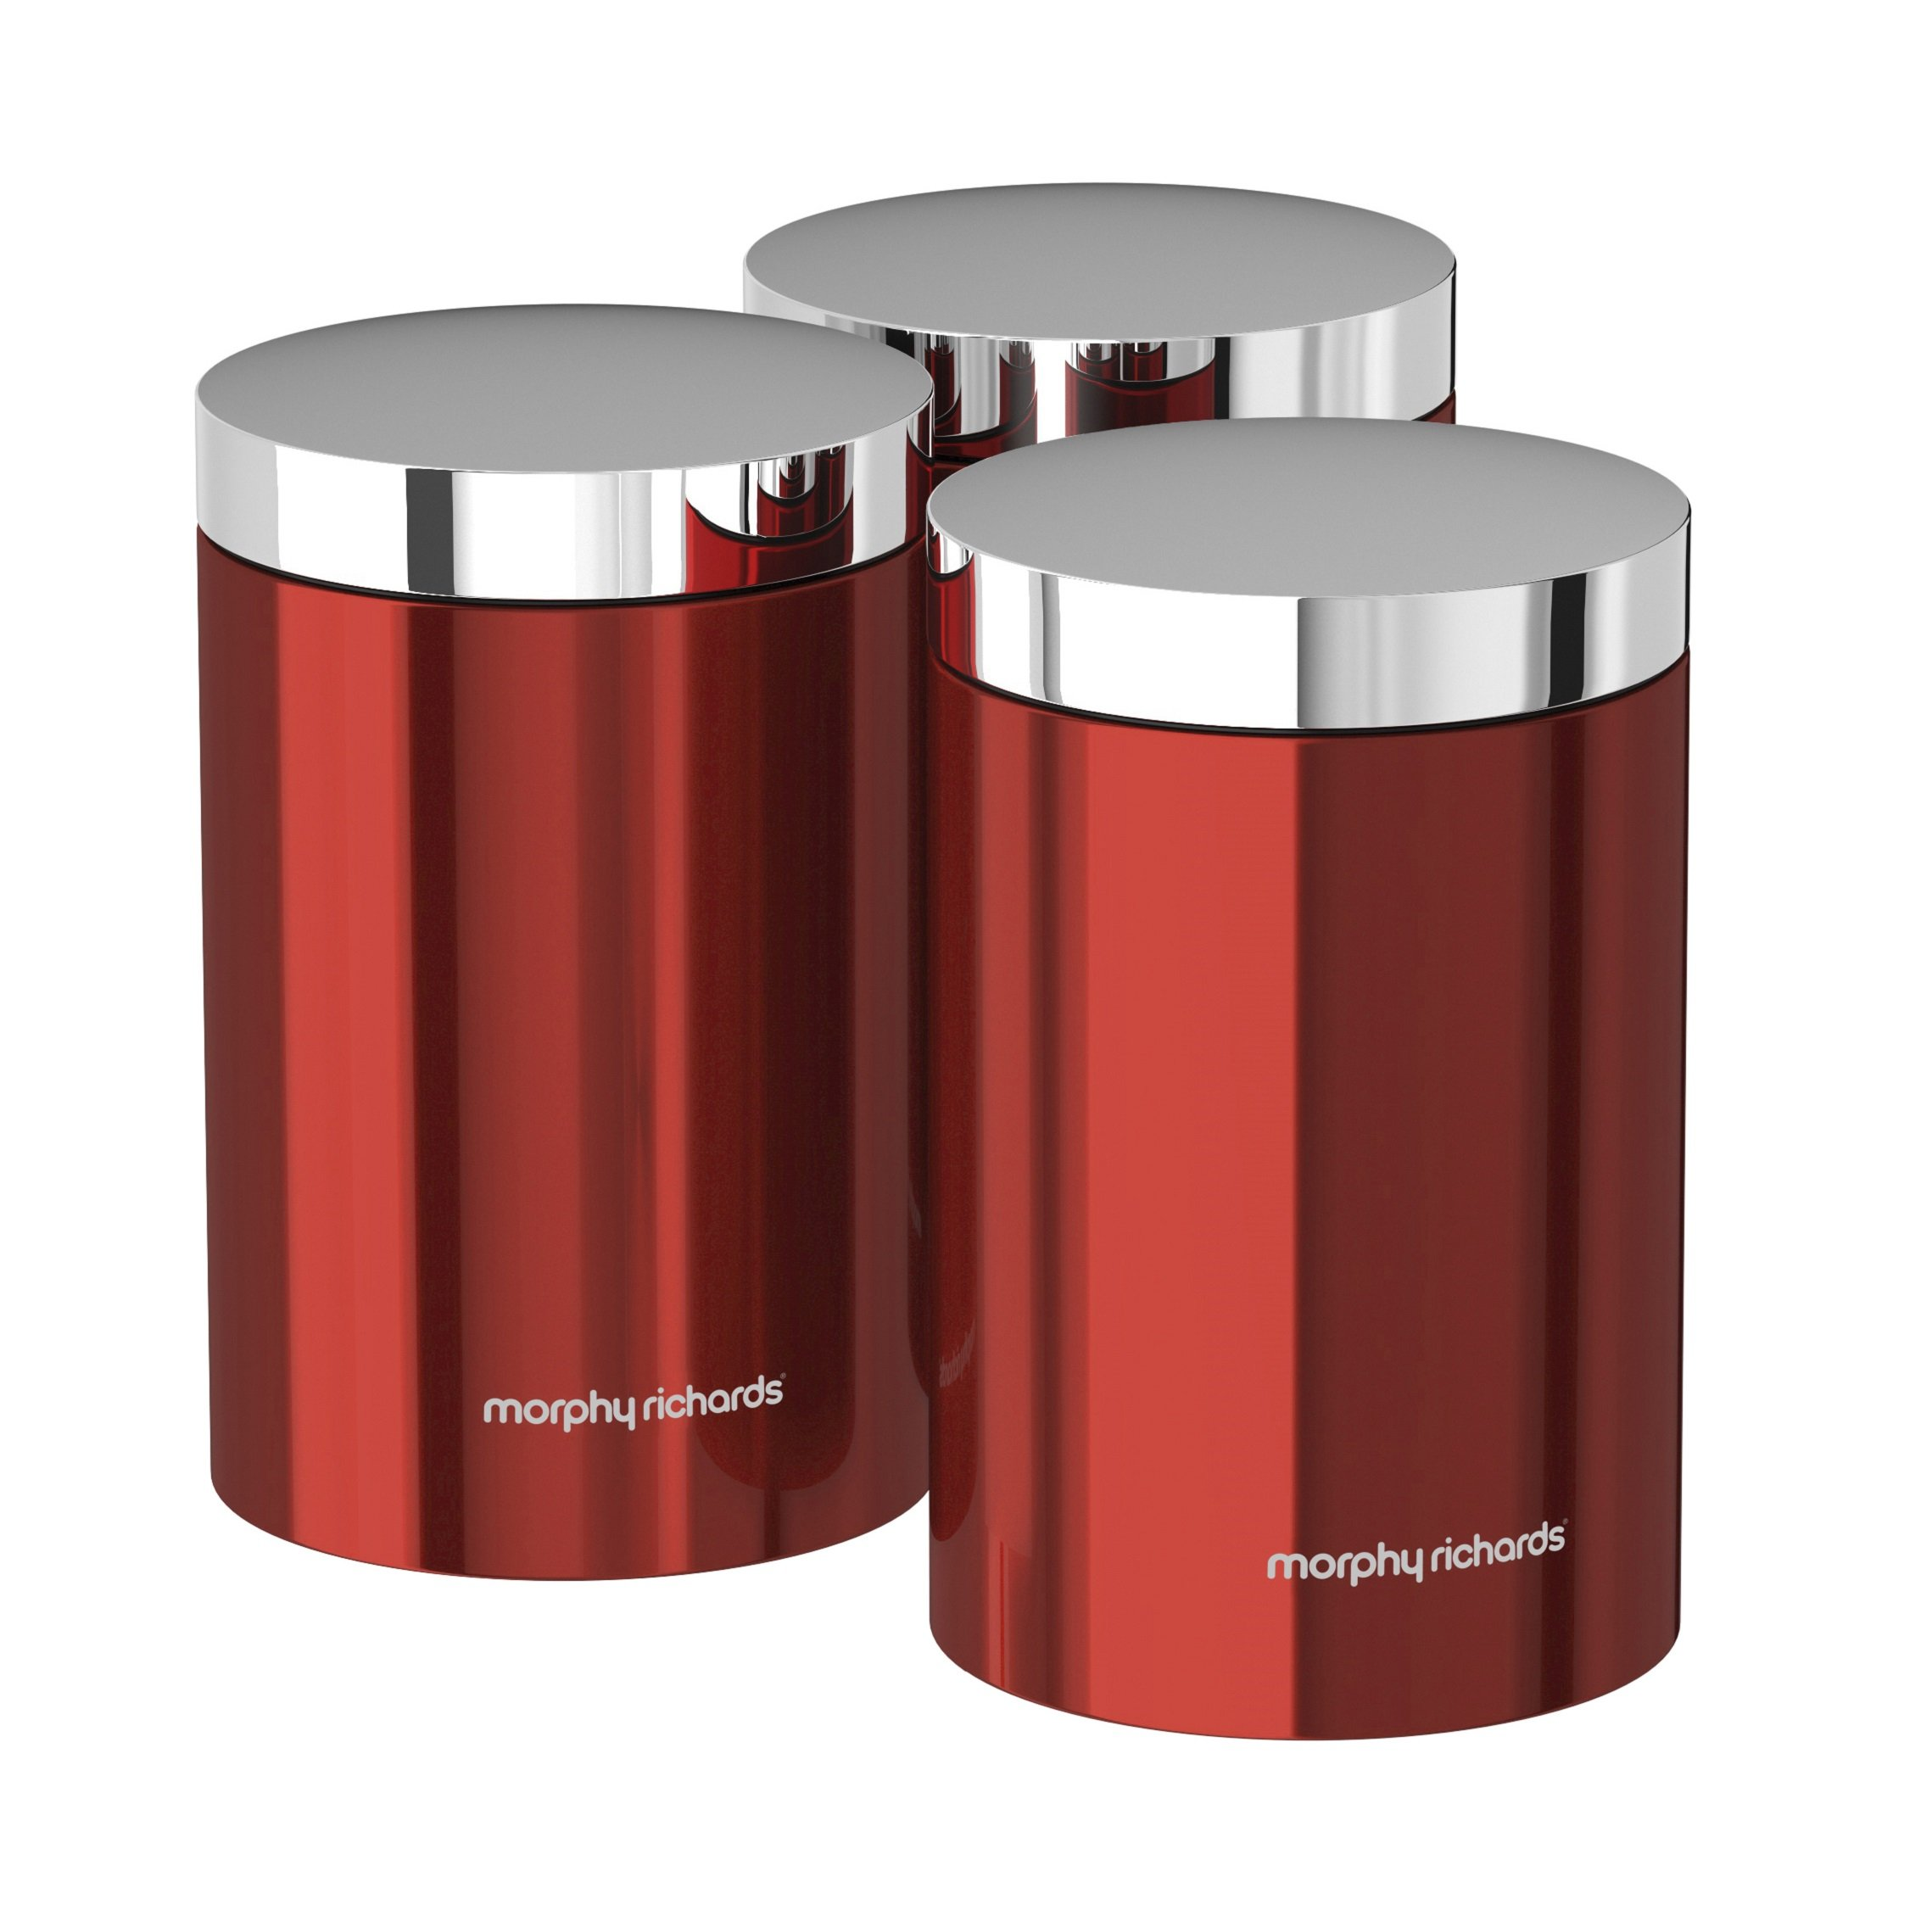 Morphy Richards Kitchen Set: Morphy Richards Set Of 3 Storage Canisters - Red 5011832051660